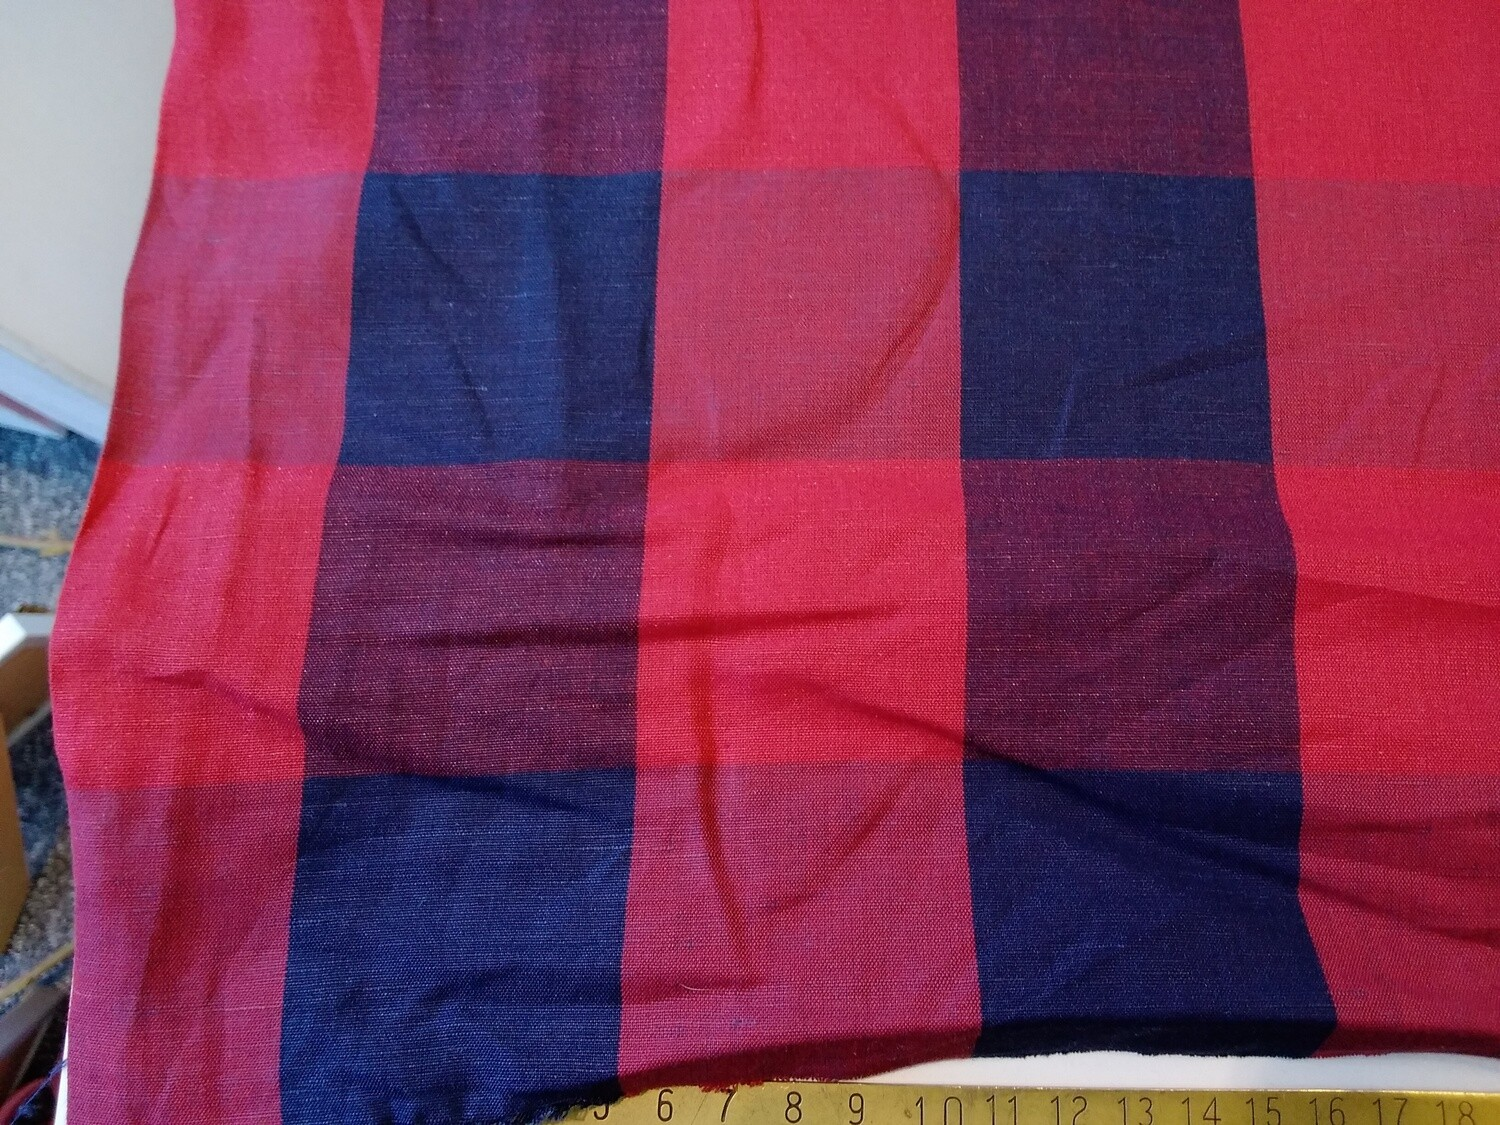 Linen-Cotton Check - red and blue